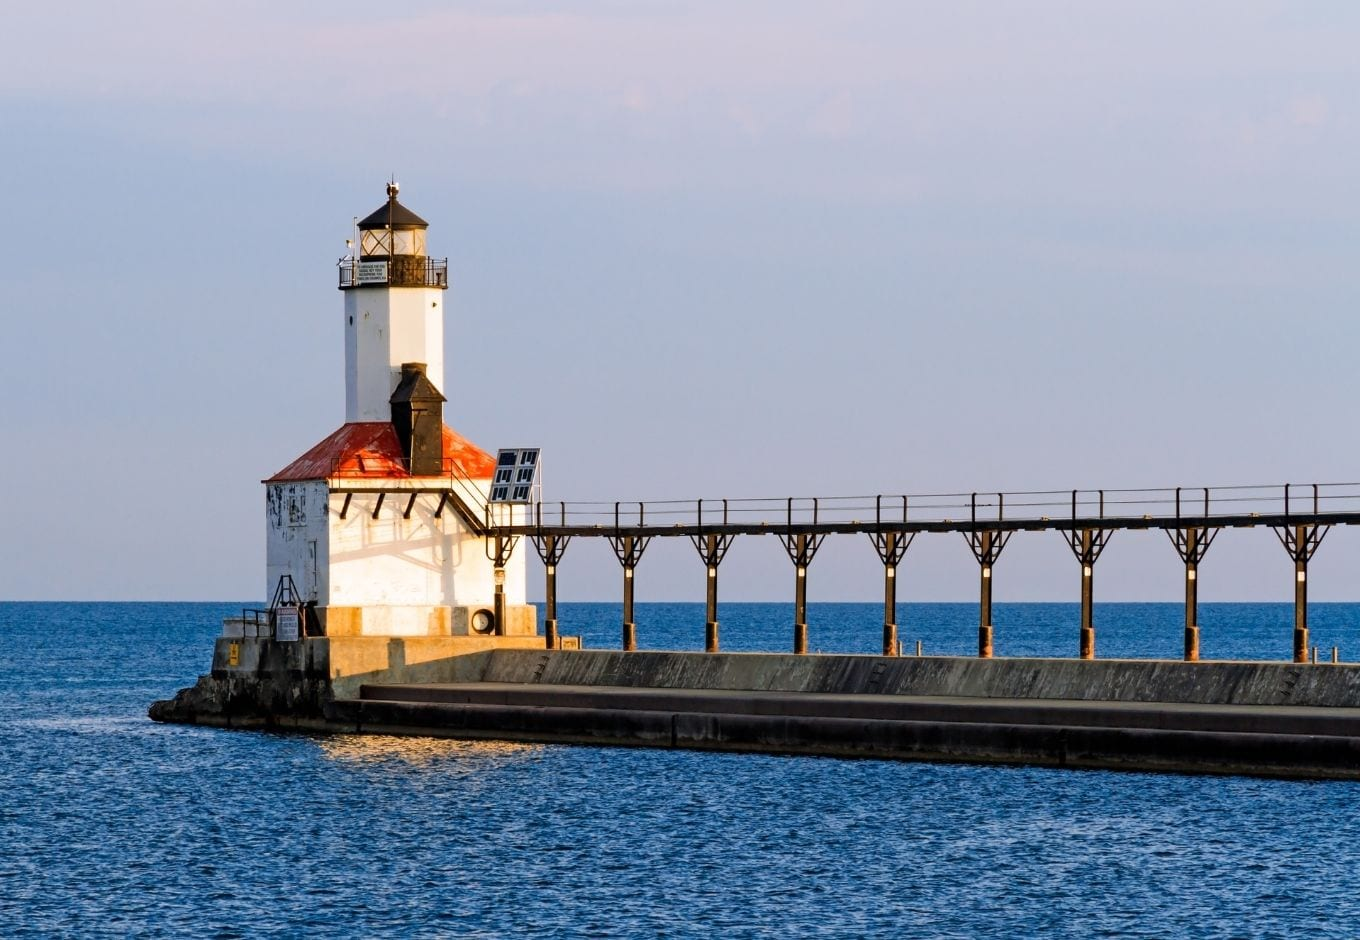 The Michigan City Lighthouse over the ocean.